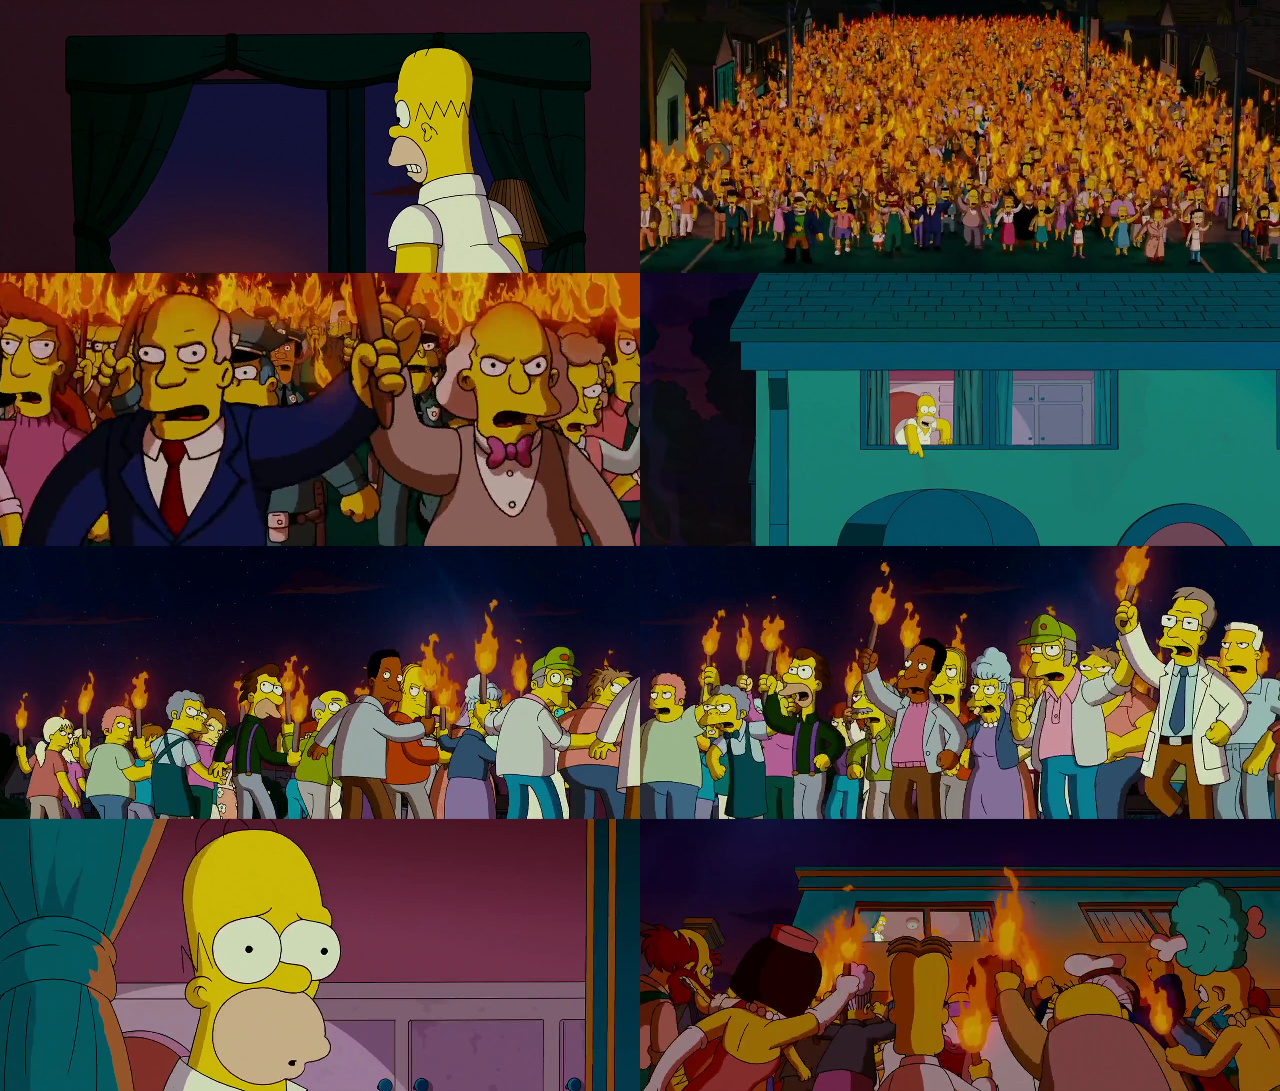 The Simpsons Movie The Angry Mob By Dlee1293847 On Deviantart